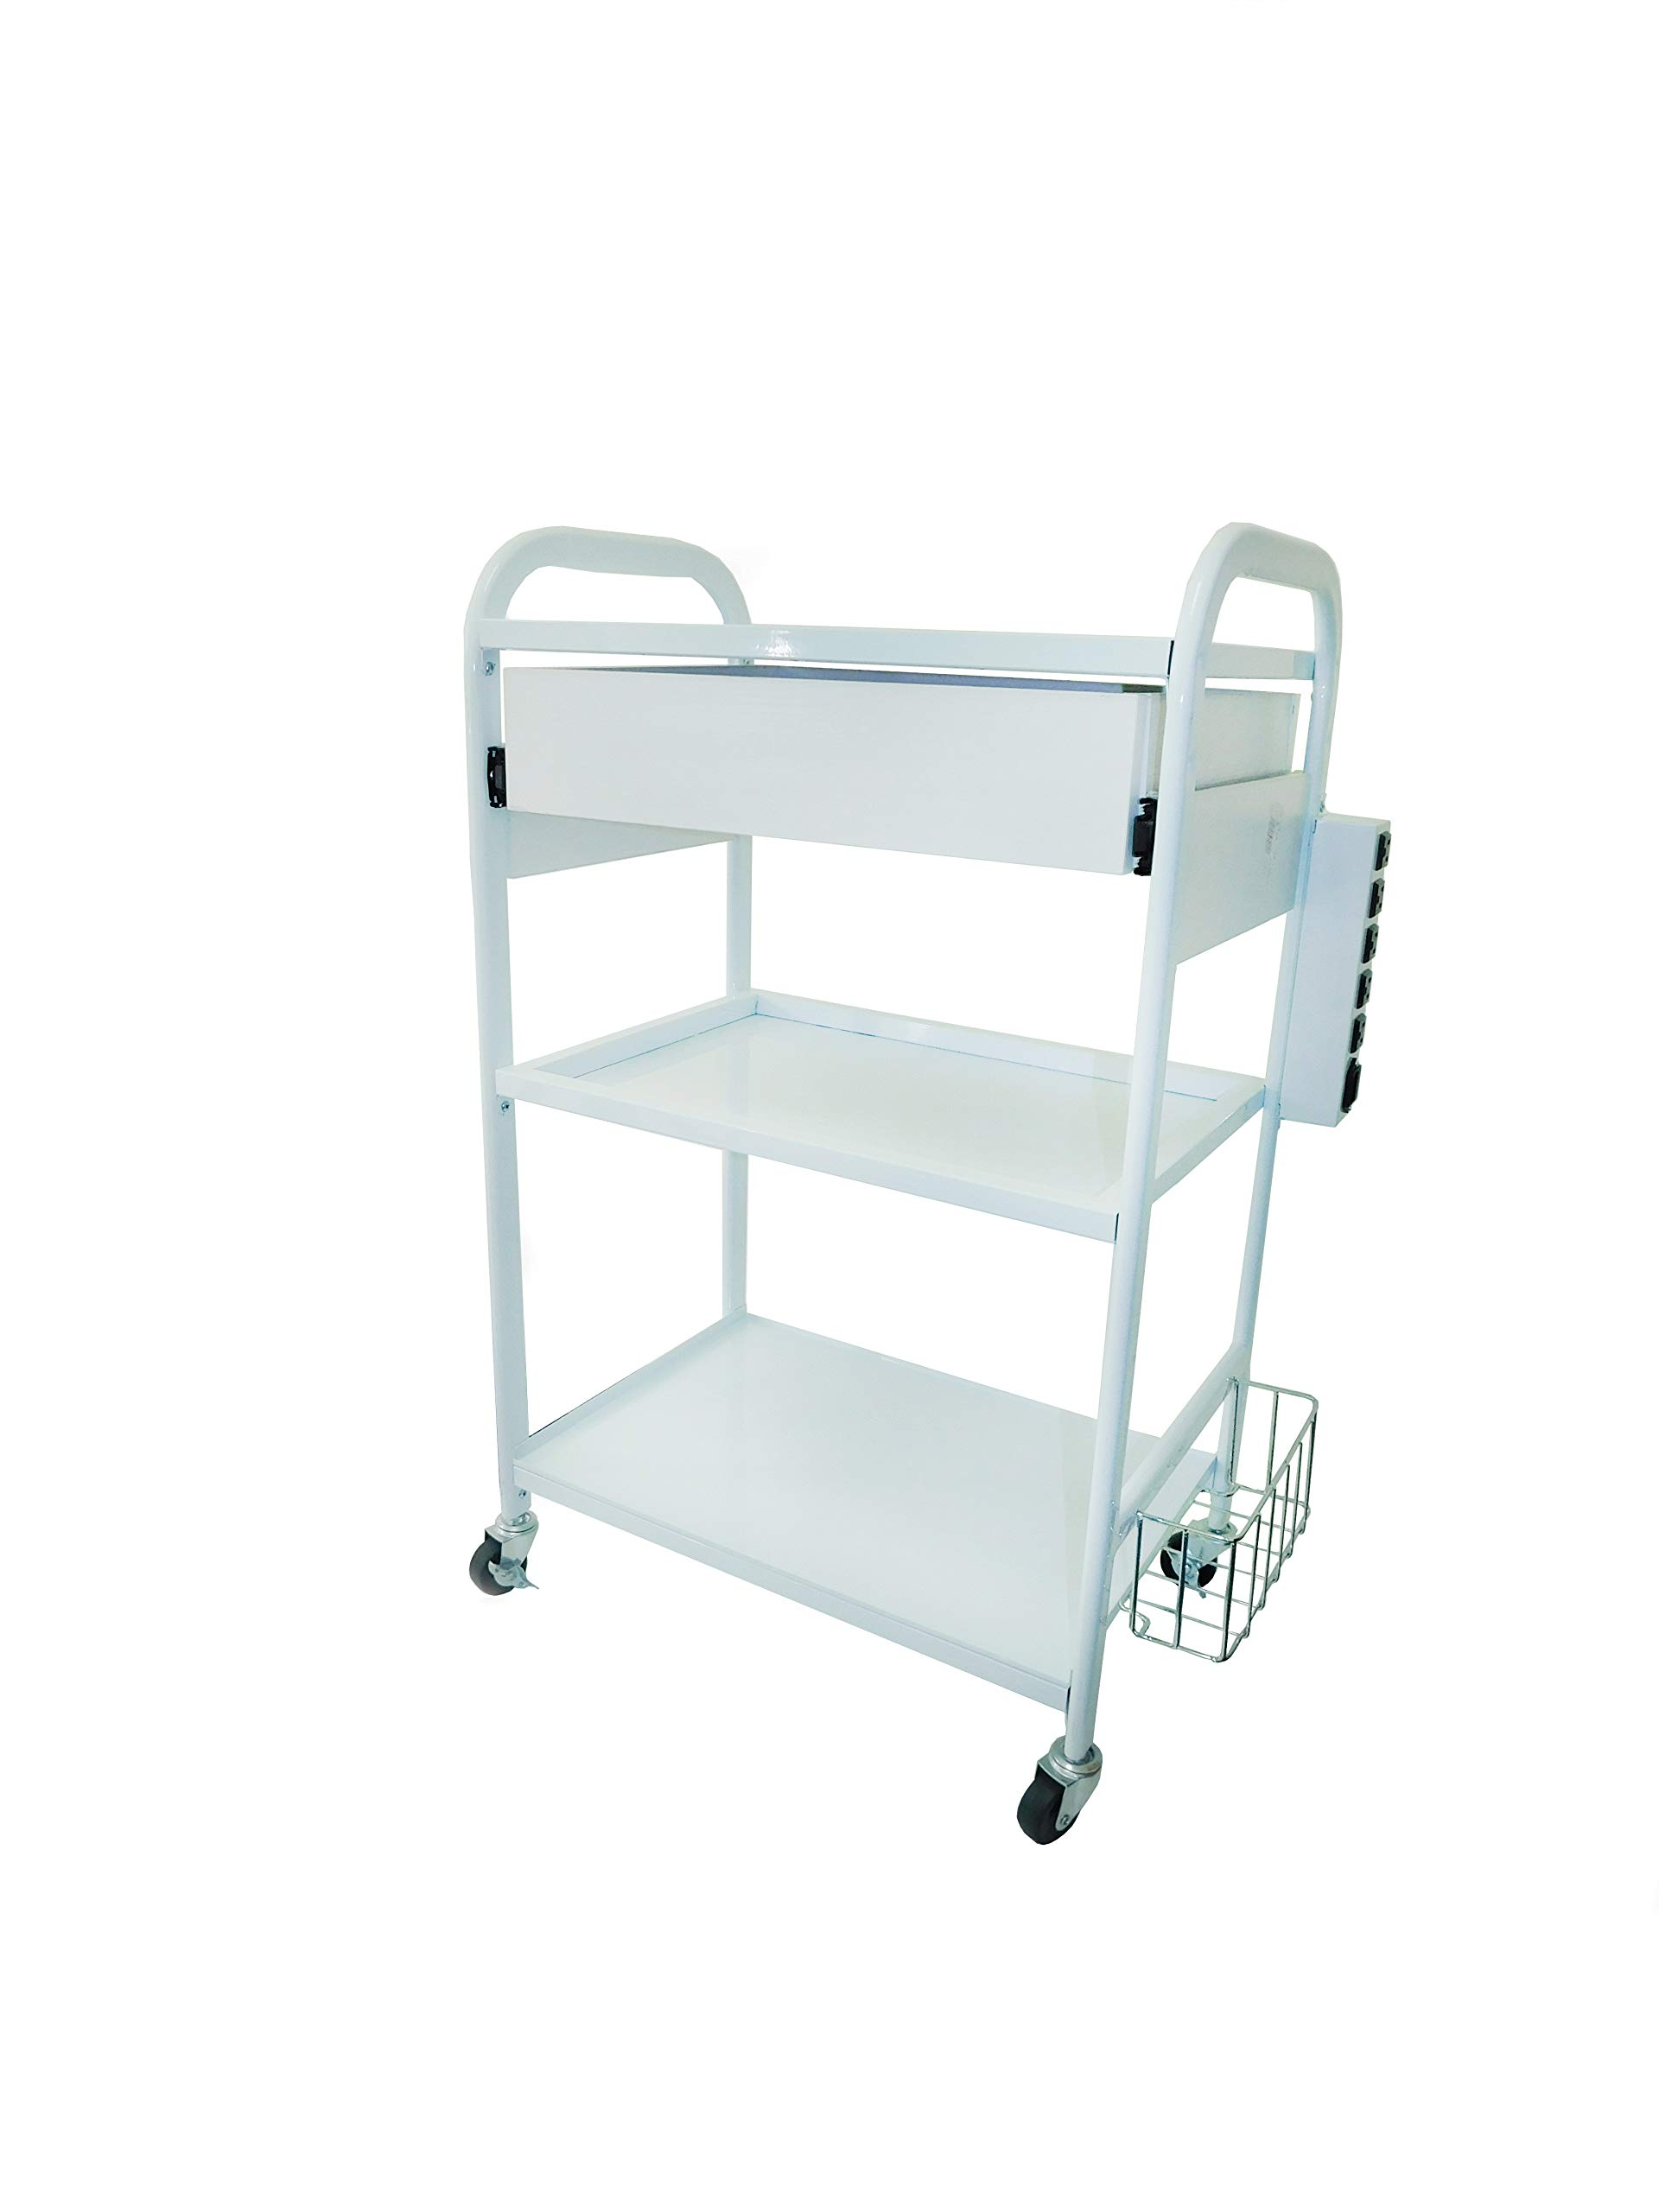 Rolling Facial Machine Utility/Storage Cart with Drawer, Wheels, and 3 Tiers, Features Electrical Box & Basket, Trolley for Salon & Spa, Mobile Cart for Estheticians - eMark Beauty